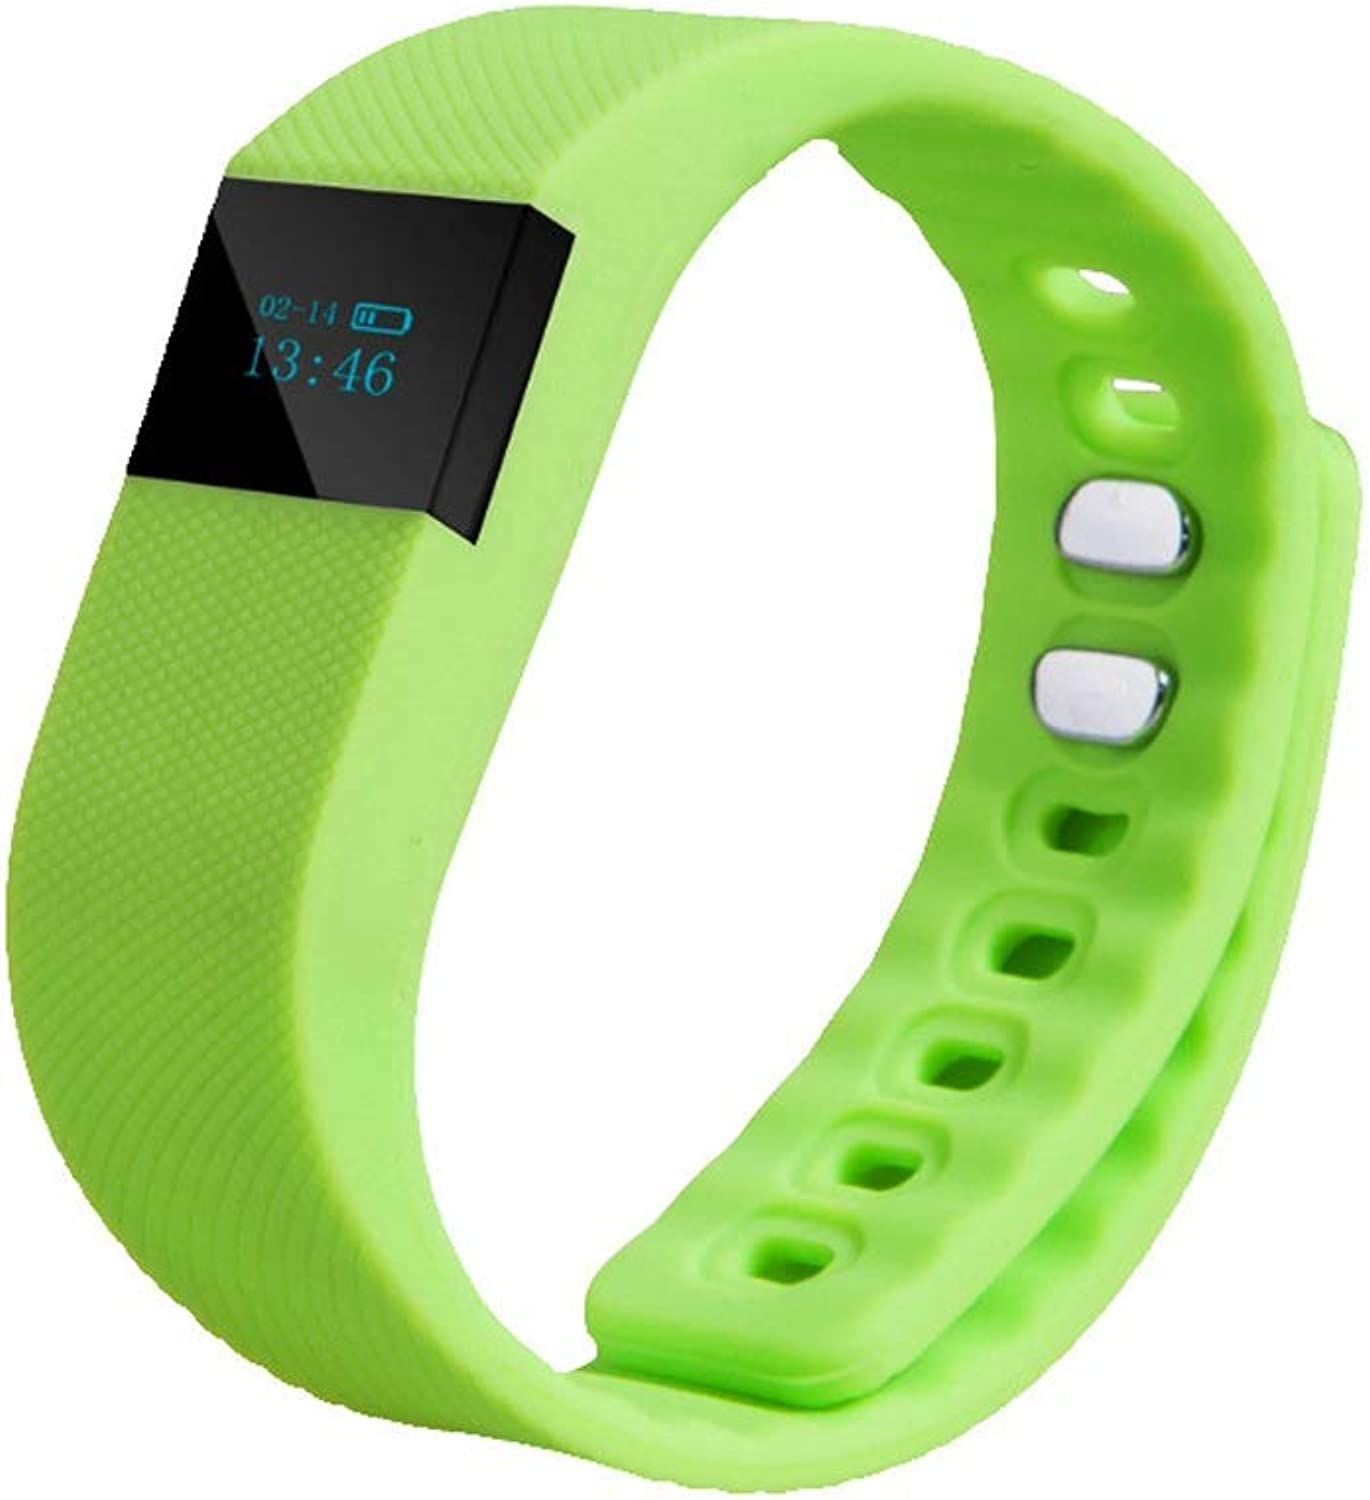 WckYT Intelligent Monitoring blueeetooth Connection Sleep Quality Smart Bracelet Fitness Mobile Phone Pedometer AntiLost (color   Green)